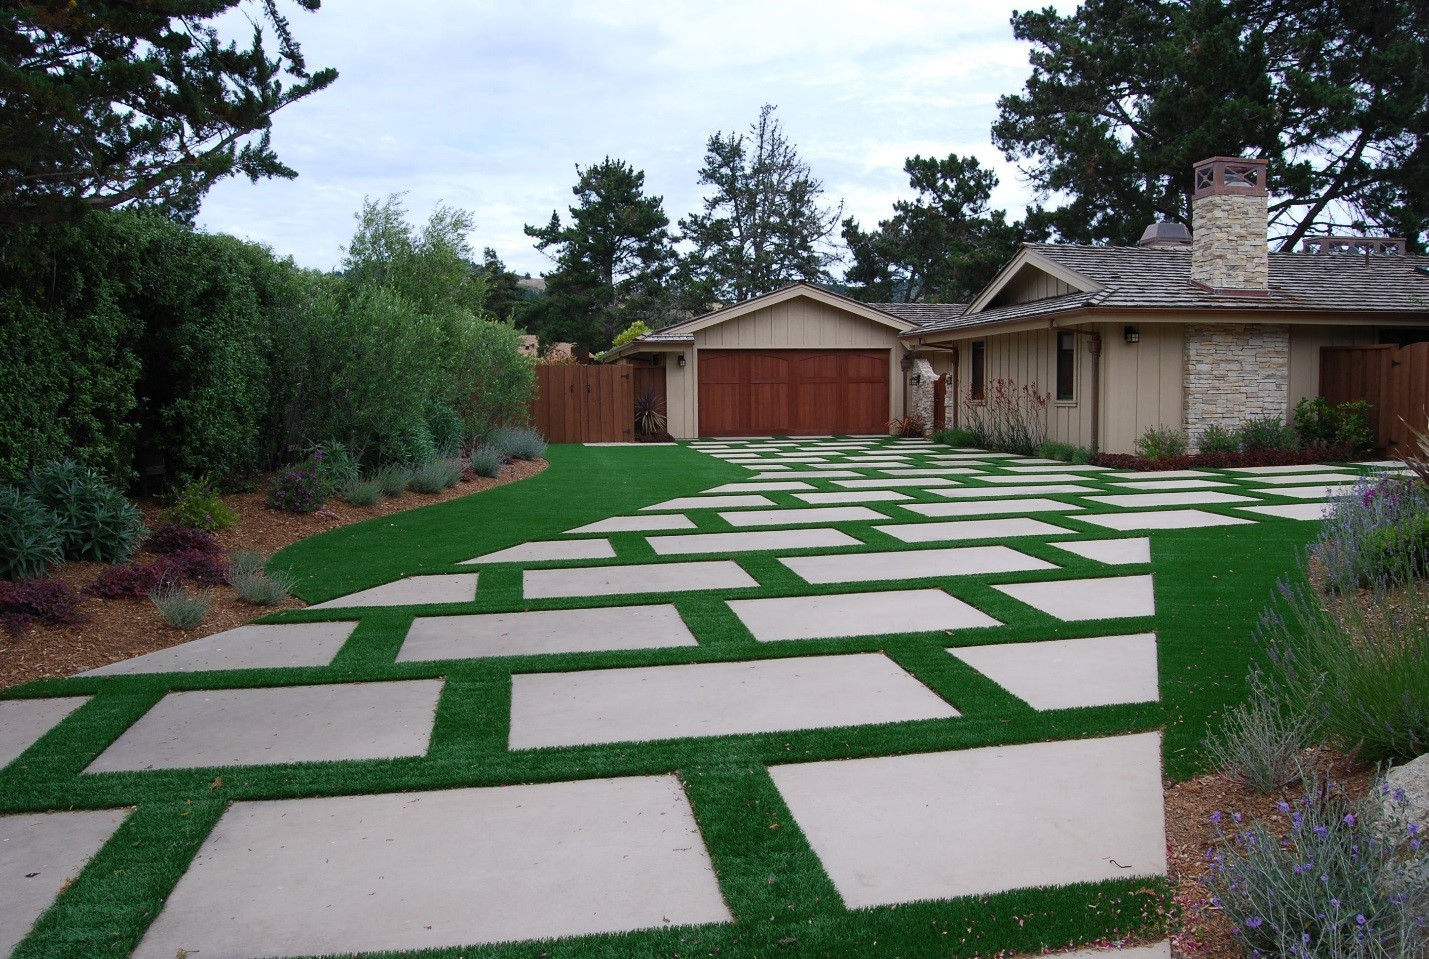 Top Design Ideas for Sculpting With Artificial Grass in Your Backyard